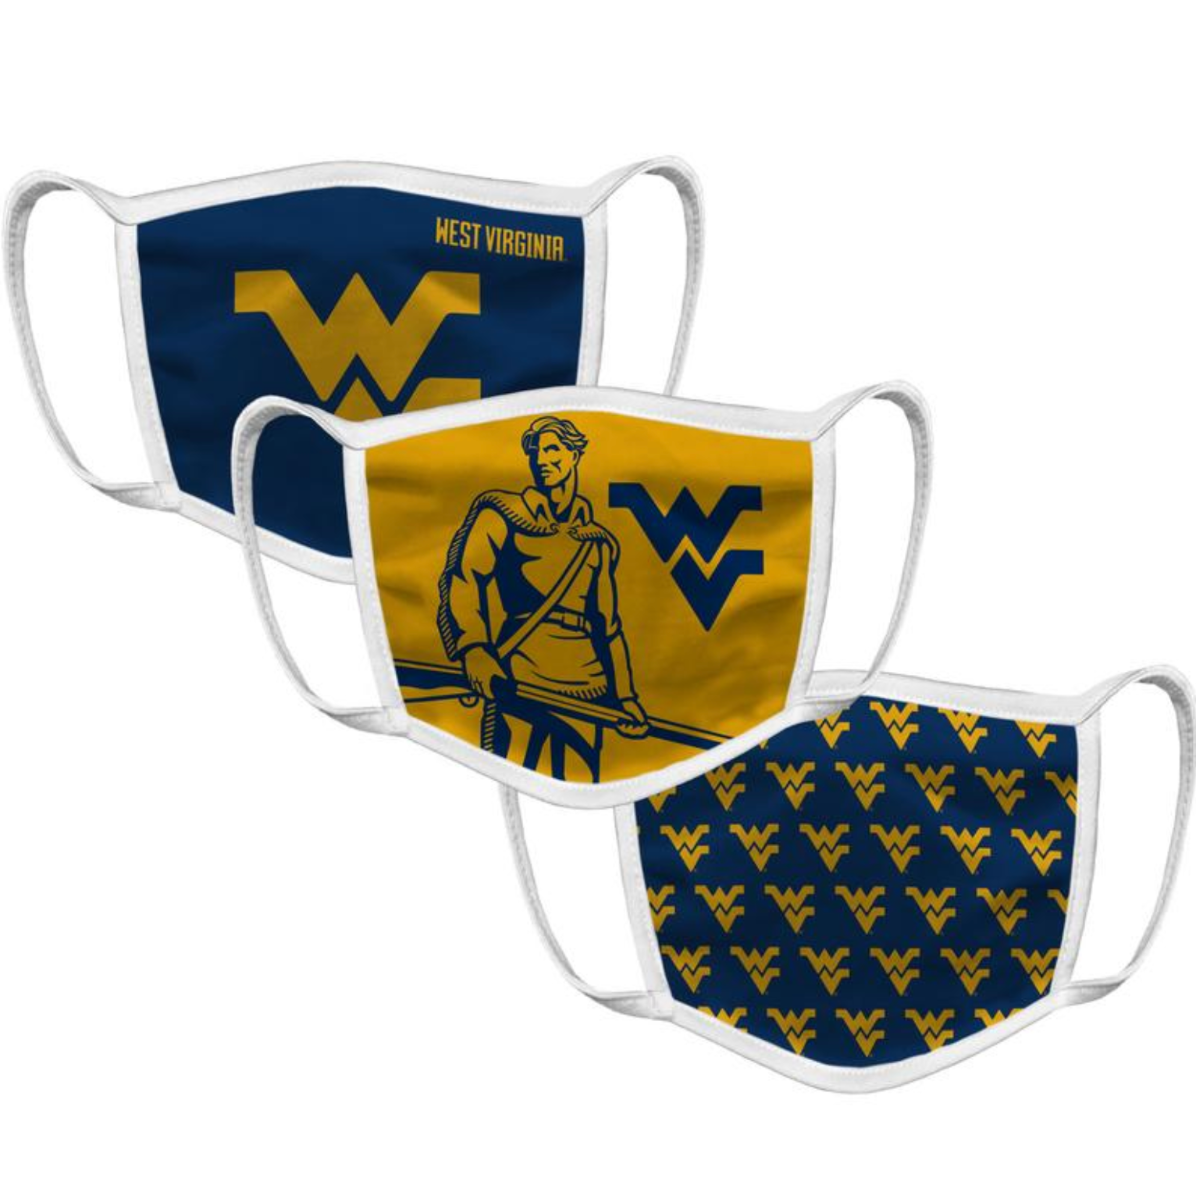 West Virginia Face Mask (3 Pack)